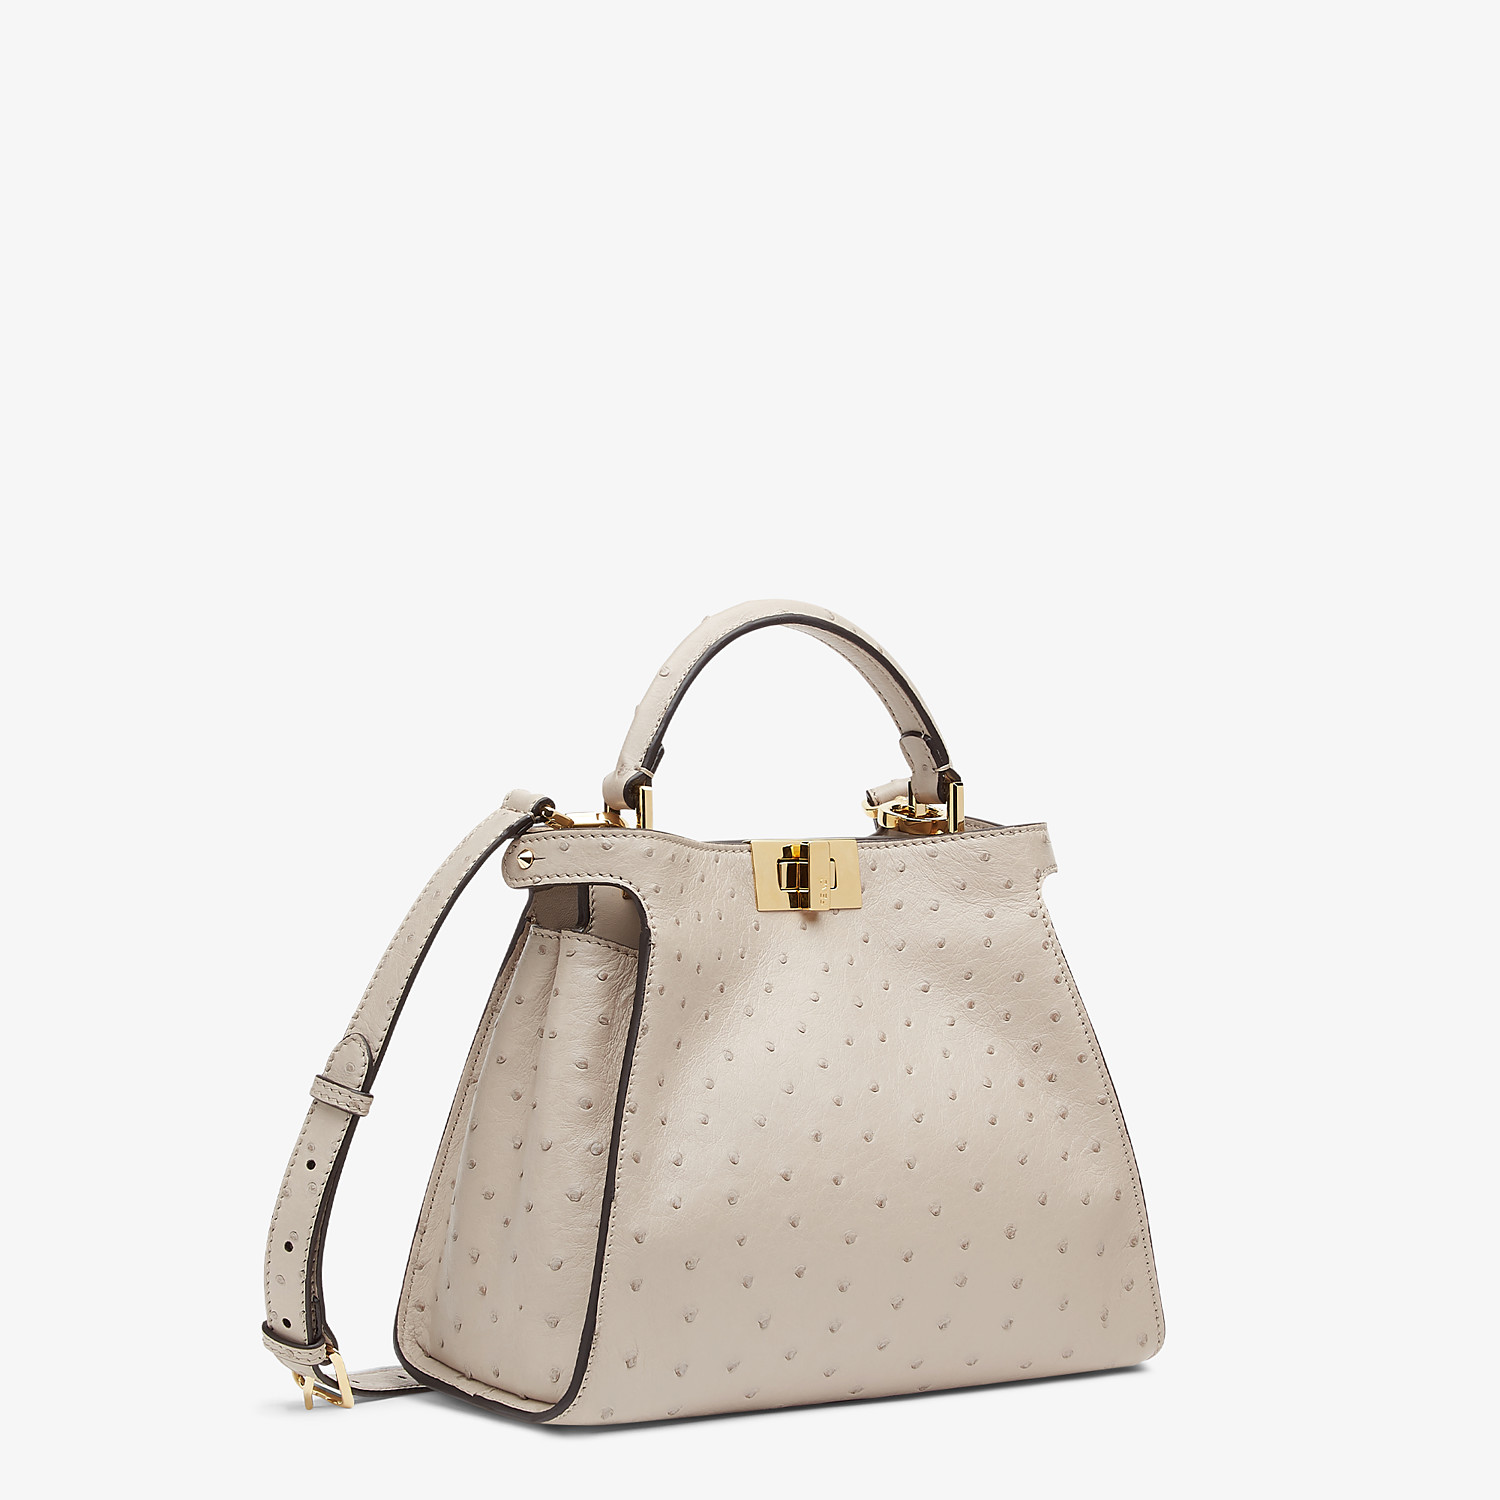 FENDI PEEKABOO ICONIC ESSENTIALLY - Gray ostrich leather bag - view 3 detail